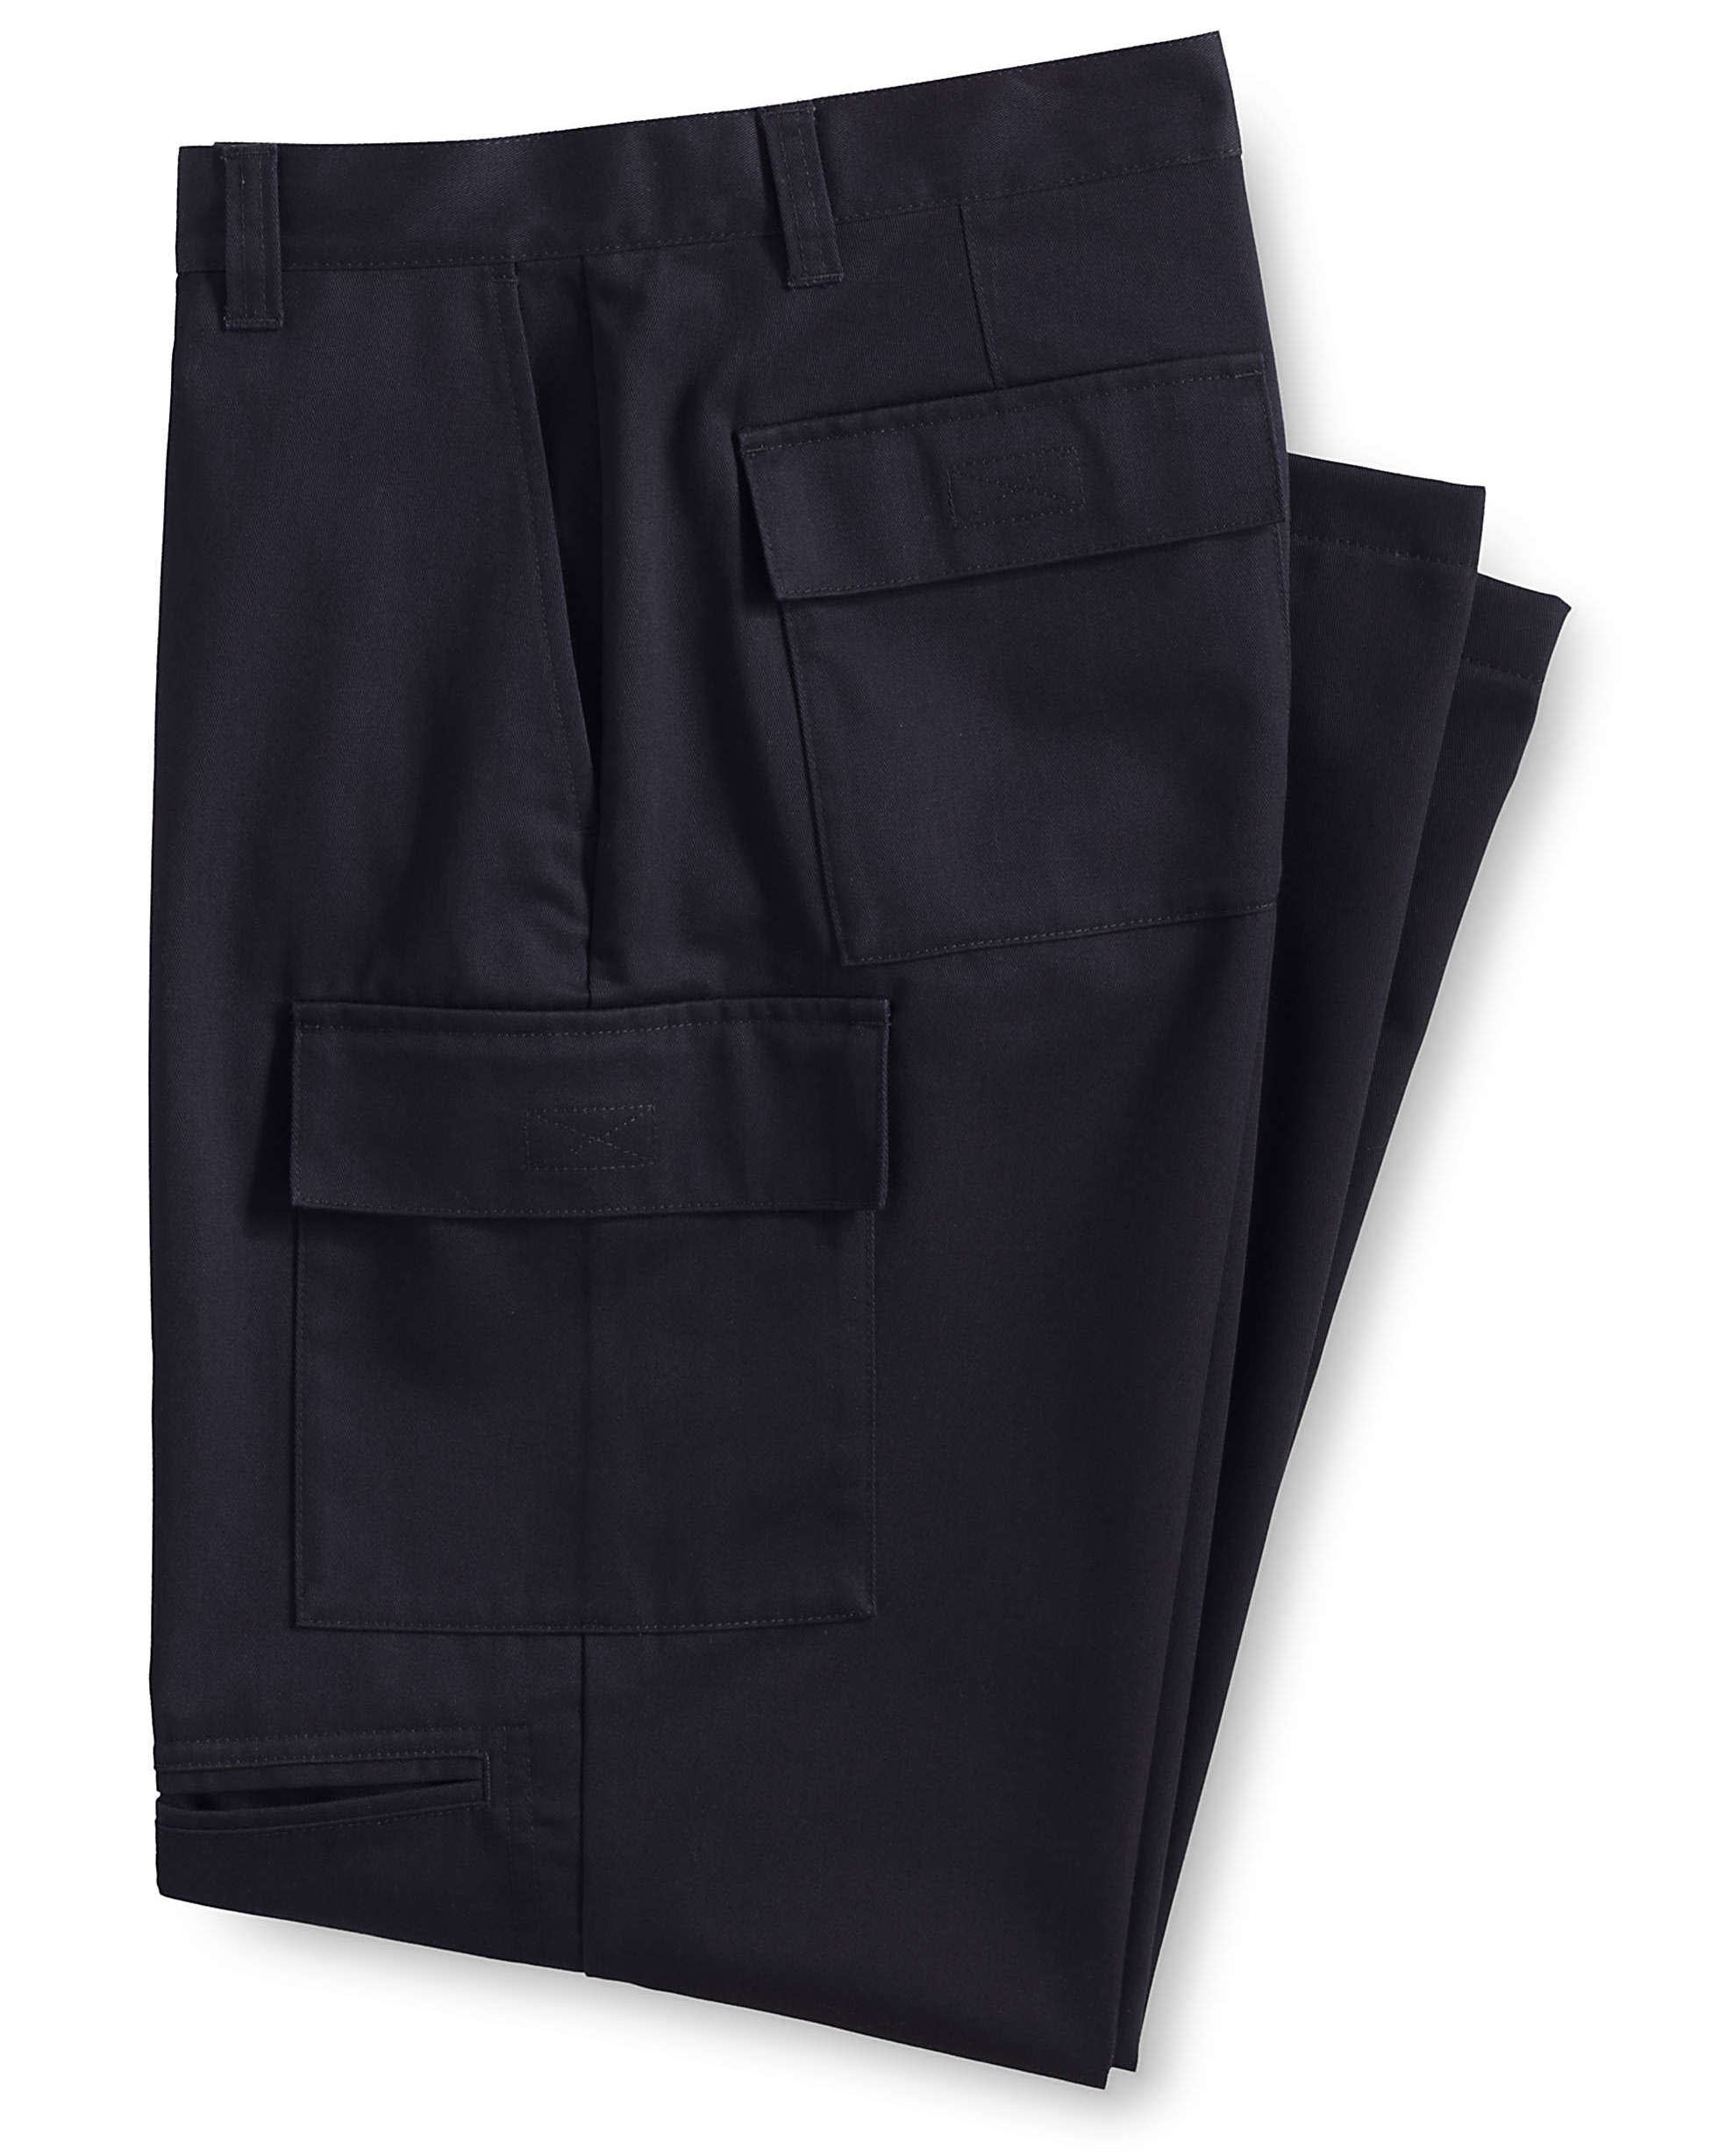 Lands' End Men's Knee Pad Cargo Pants